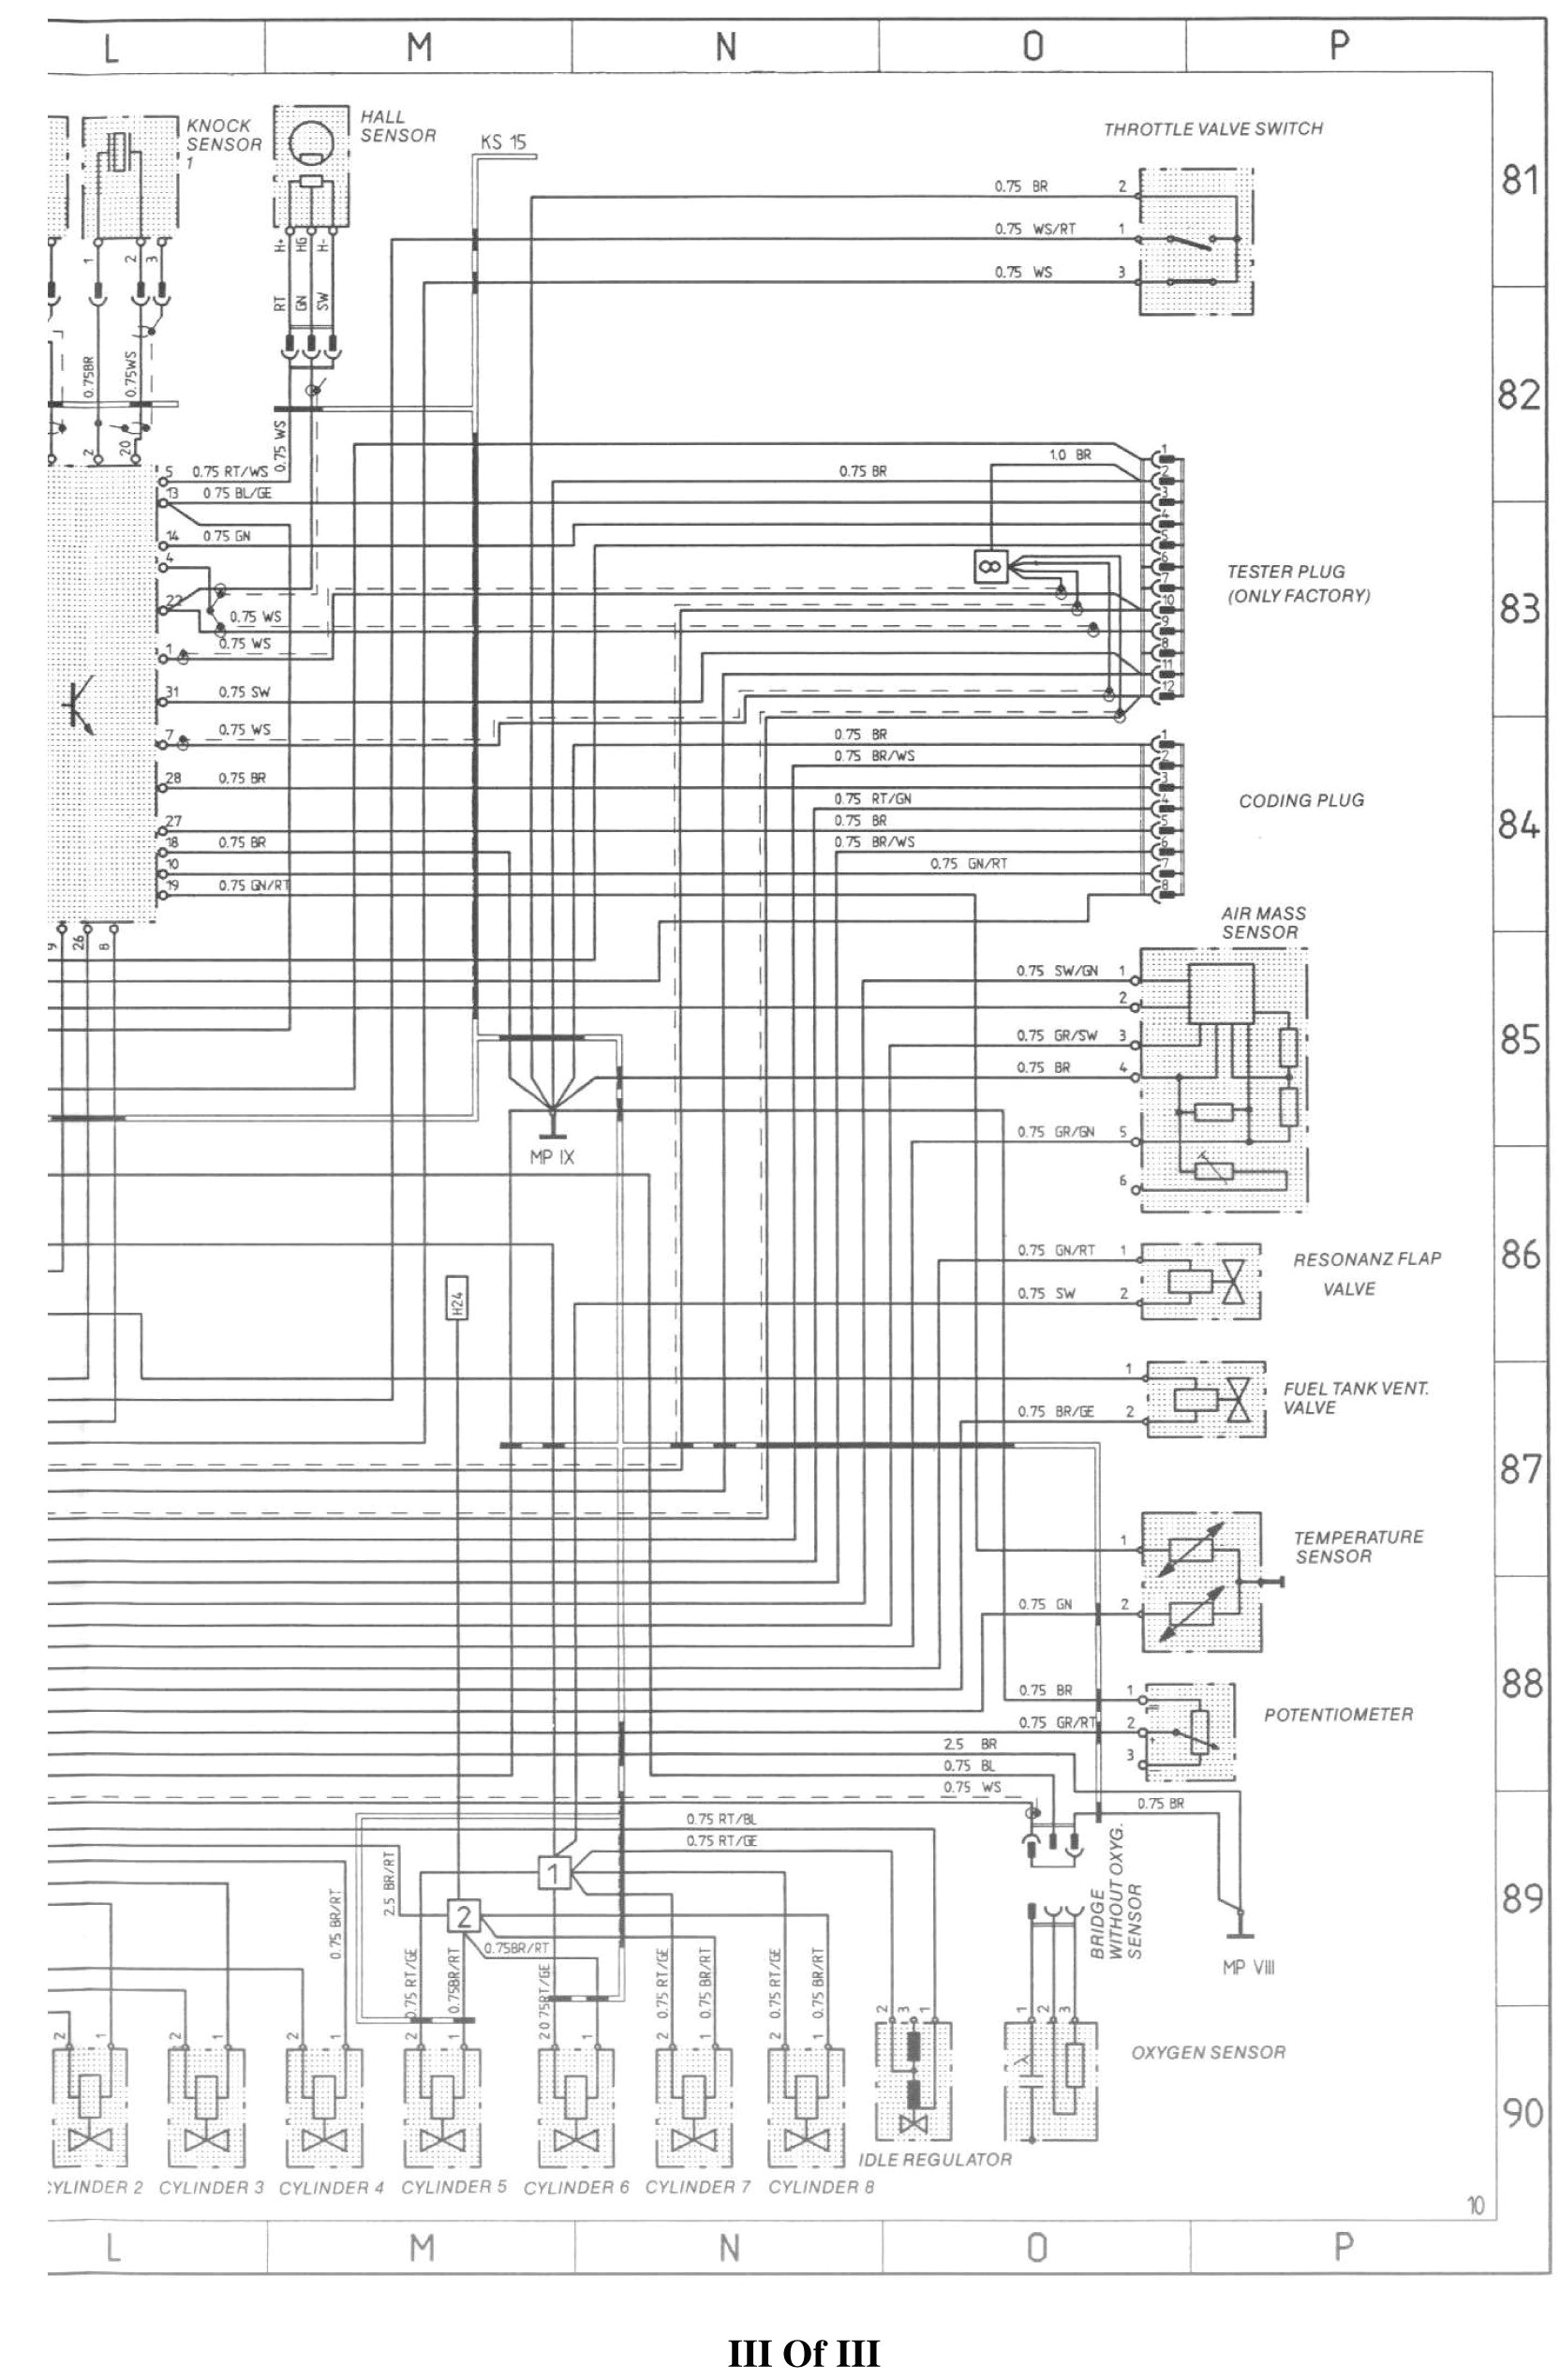 wiring diagram likewise porsche 928 temp sensor on low voltage porsche 928 s4 parts diagrams wiring